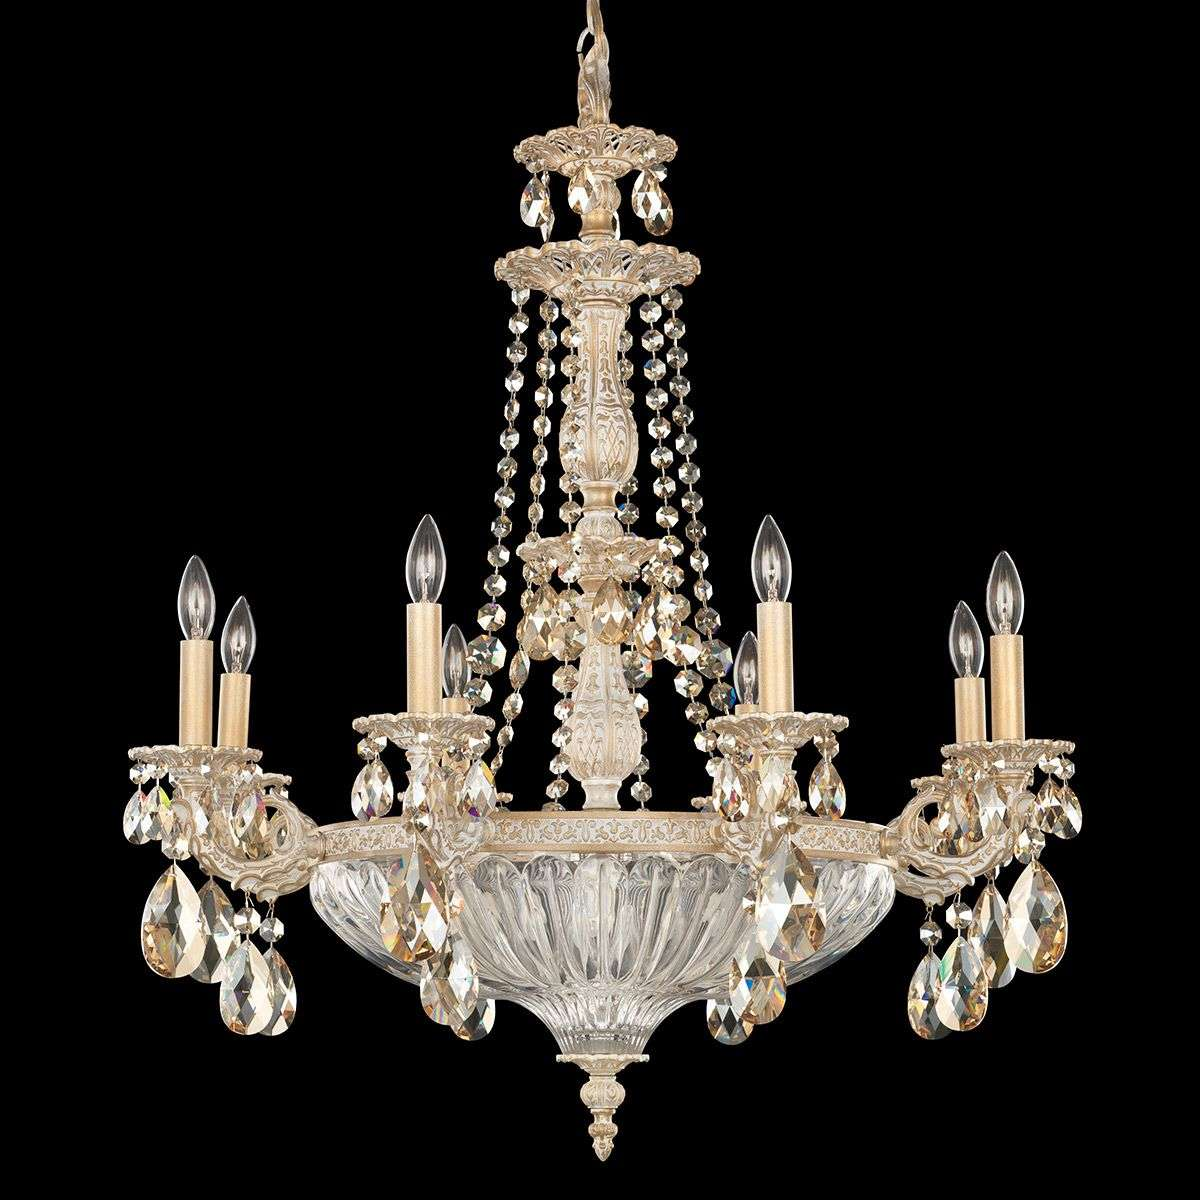 White gold chandelier milano with crystals lights white gold chandelier milano with crystals 8583030 31 mozeypictures Choice Image